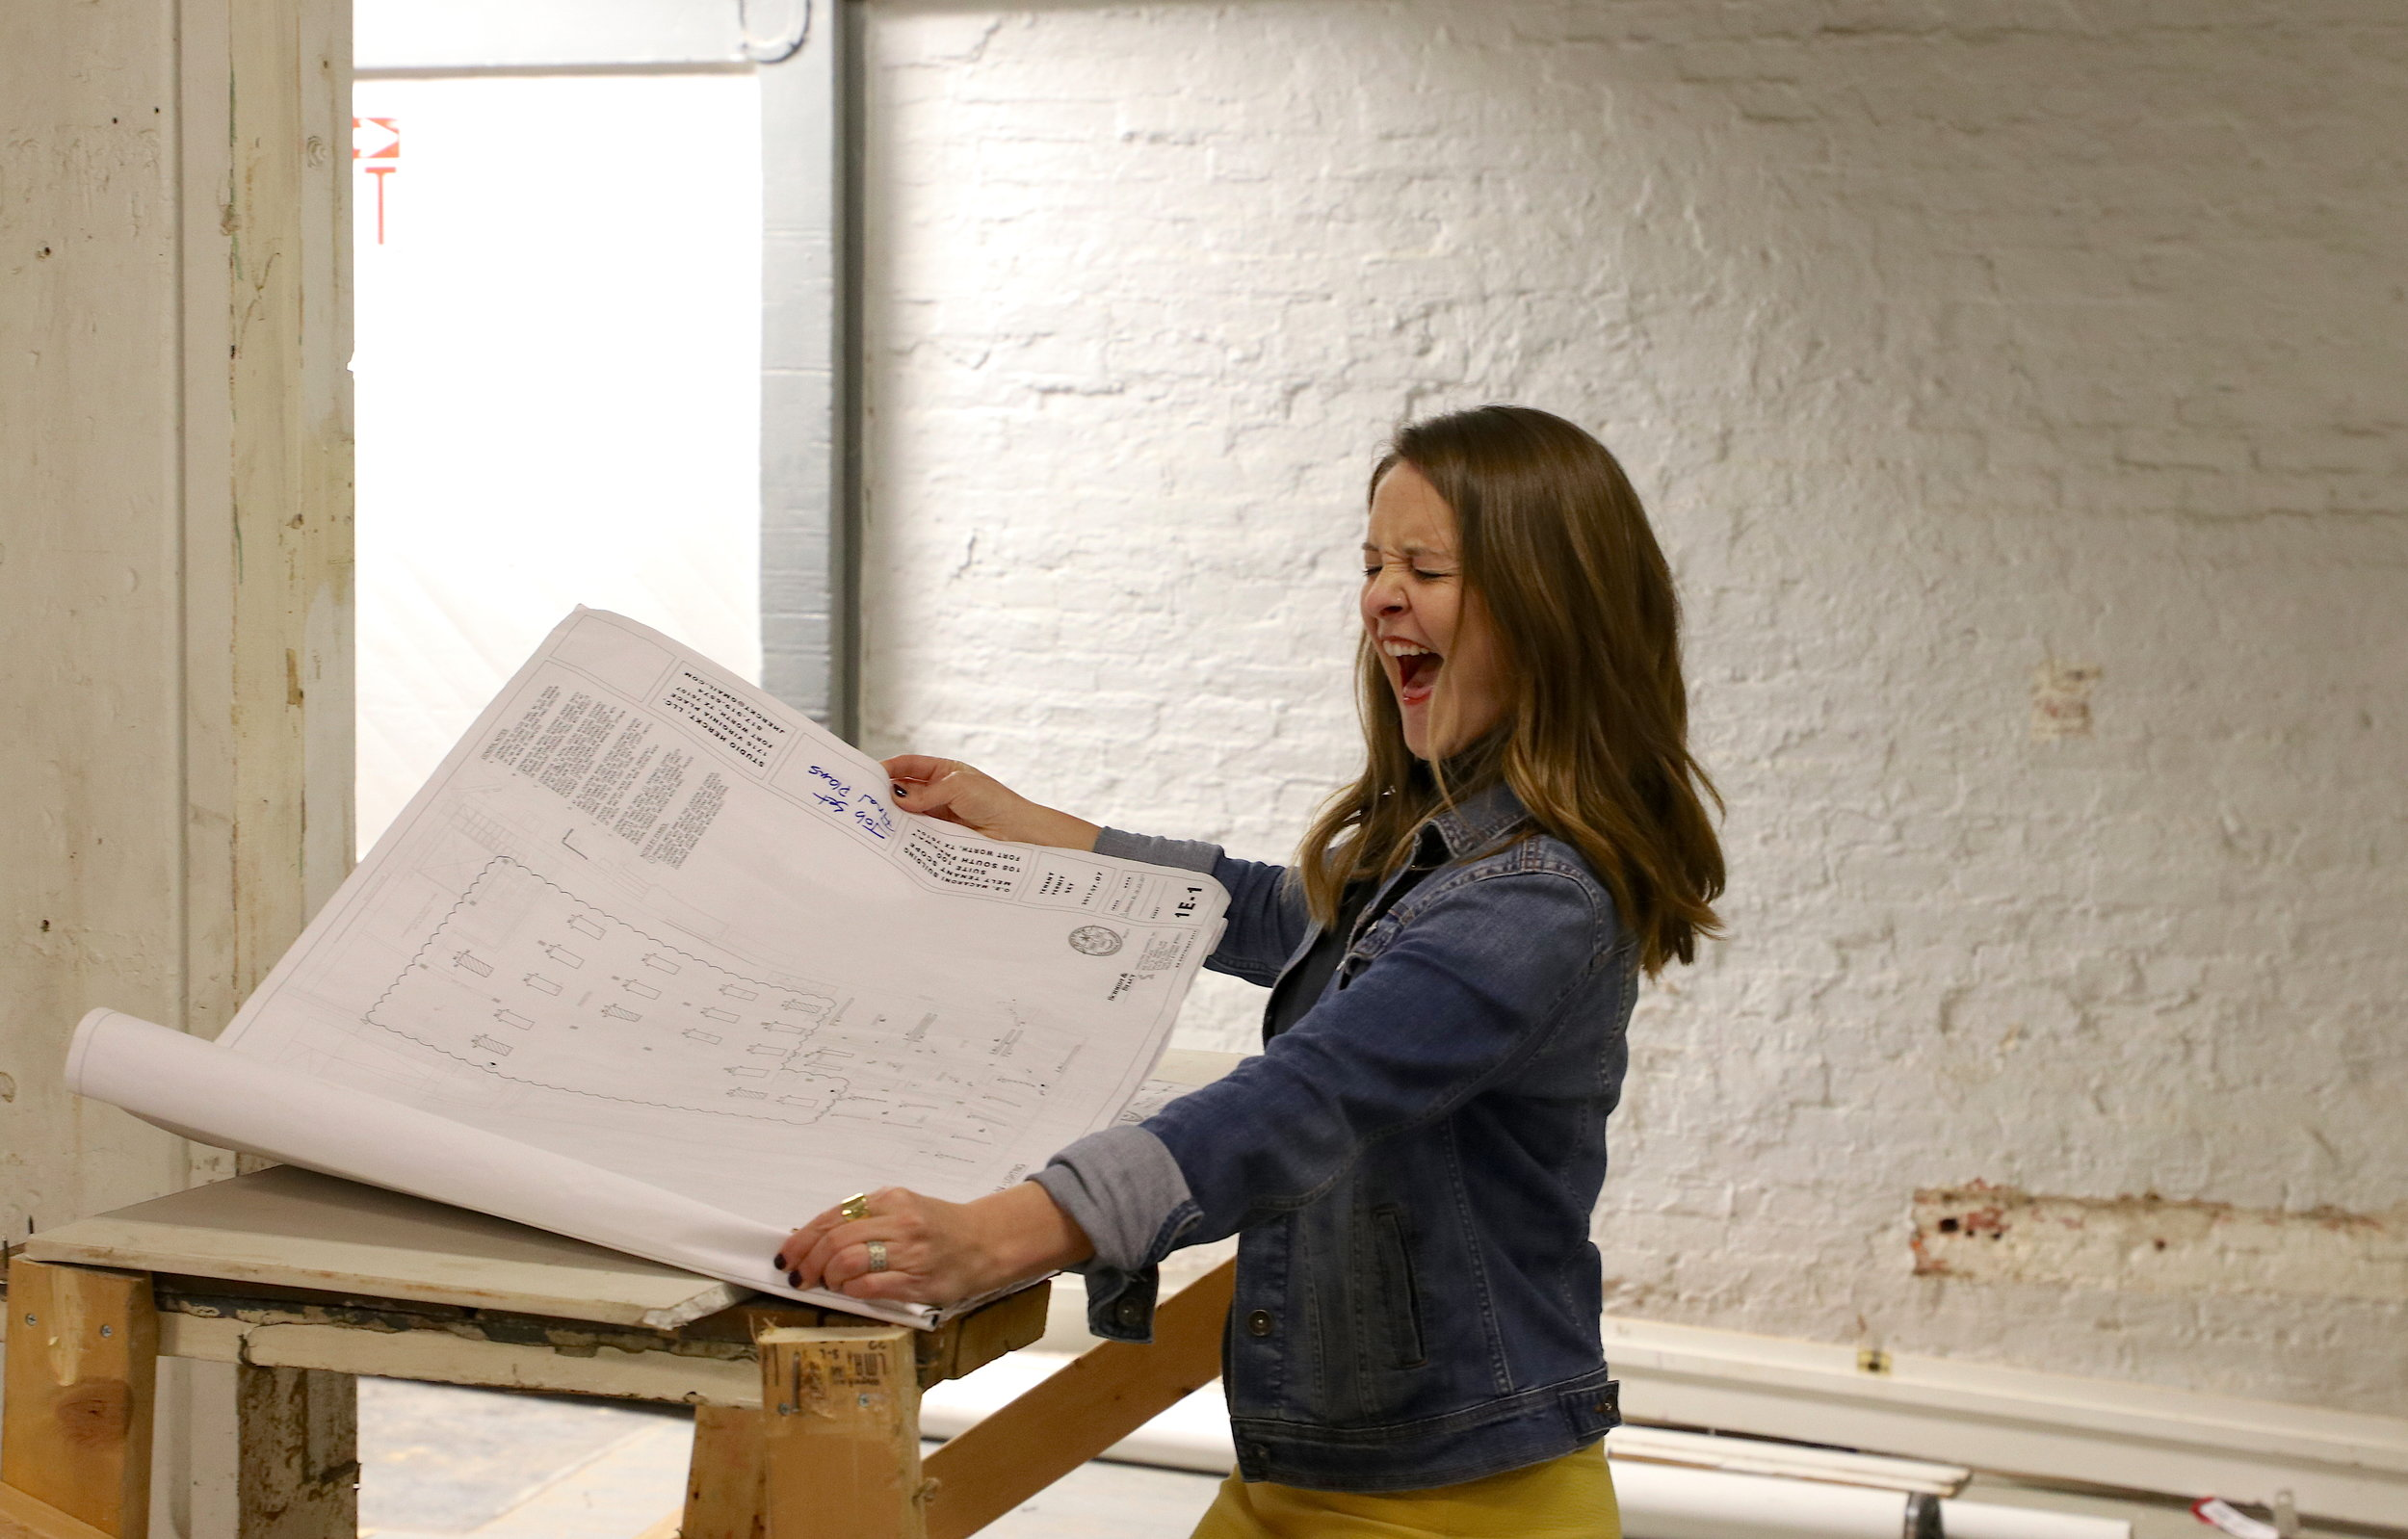 MELT owner Kari reviews blueprints for the new space, absolutely STOKED!